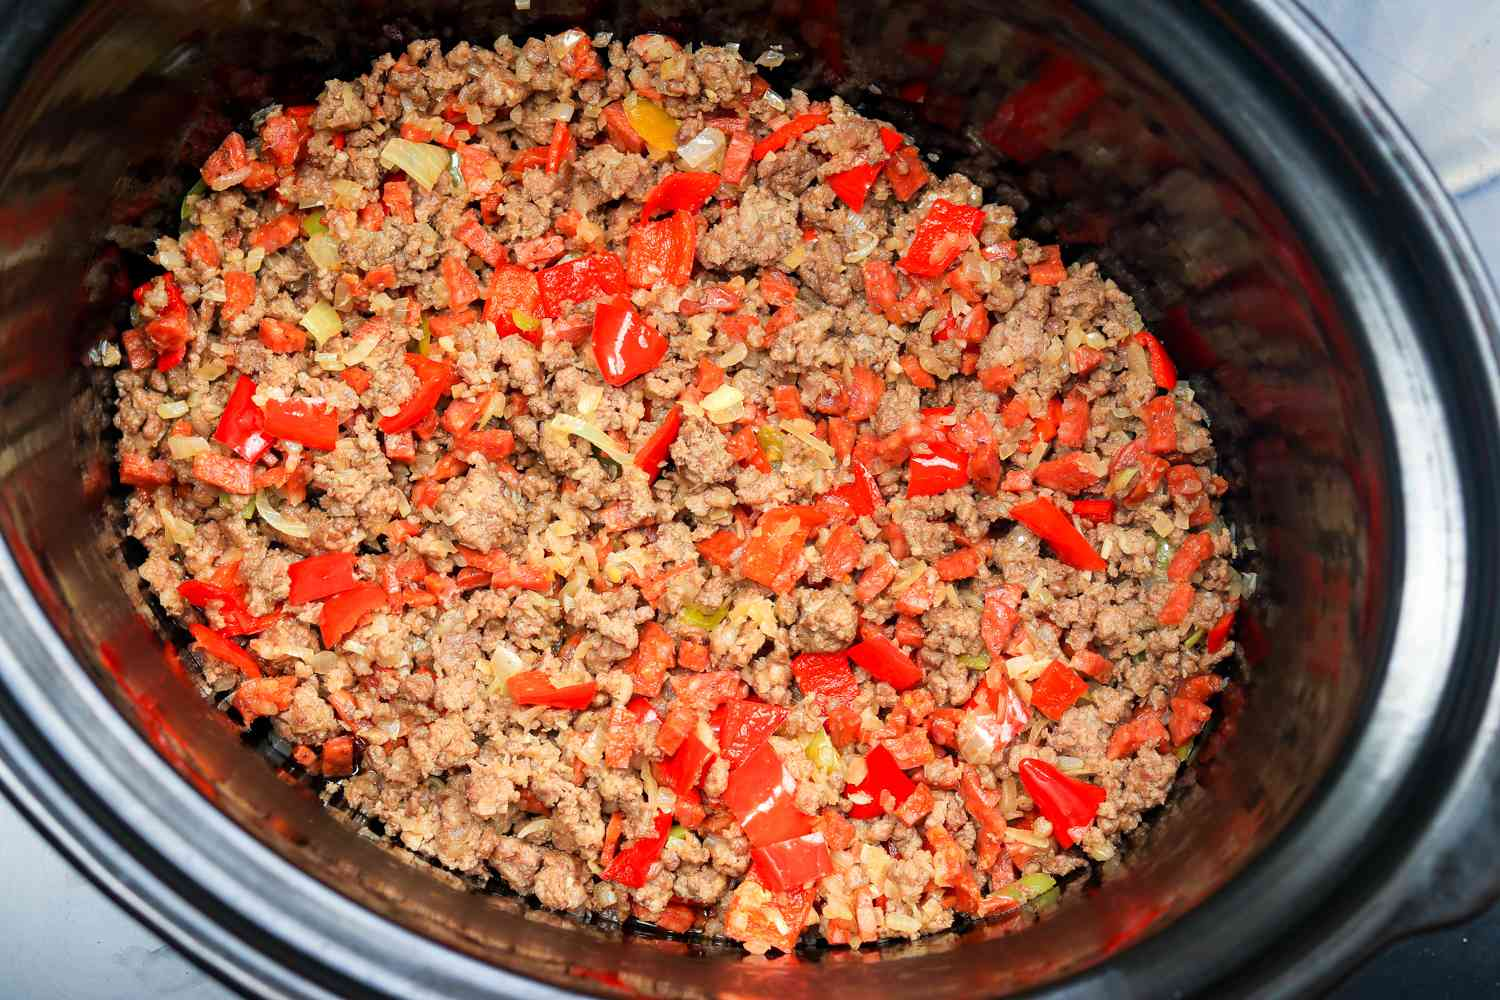 Chili With Ground Beef and Sausage mixture in a crock pot